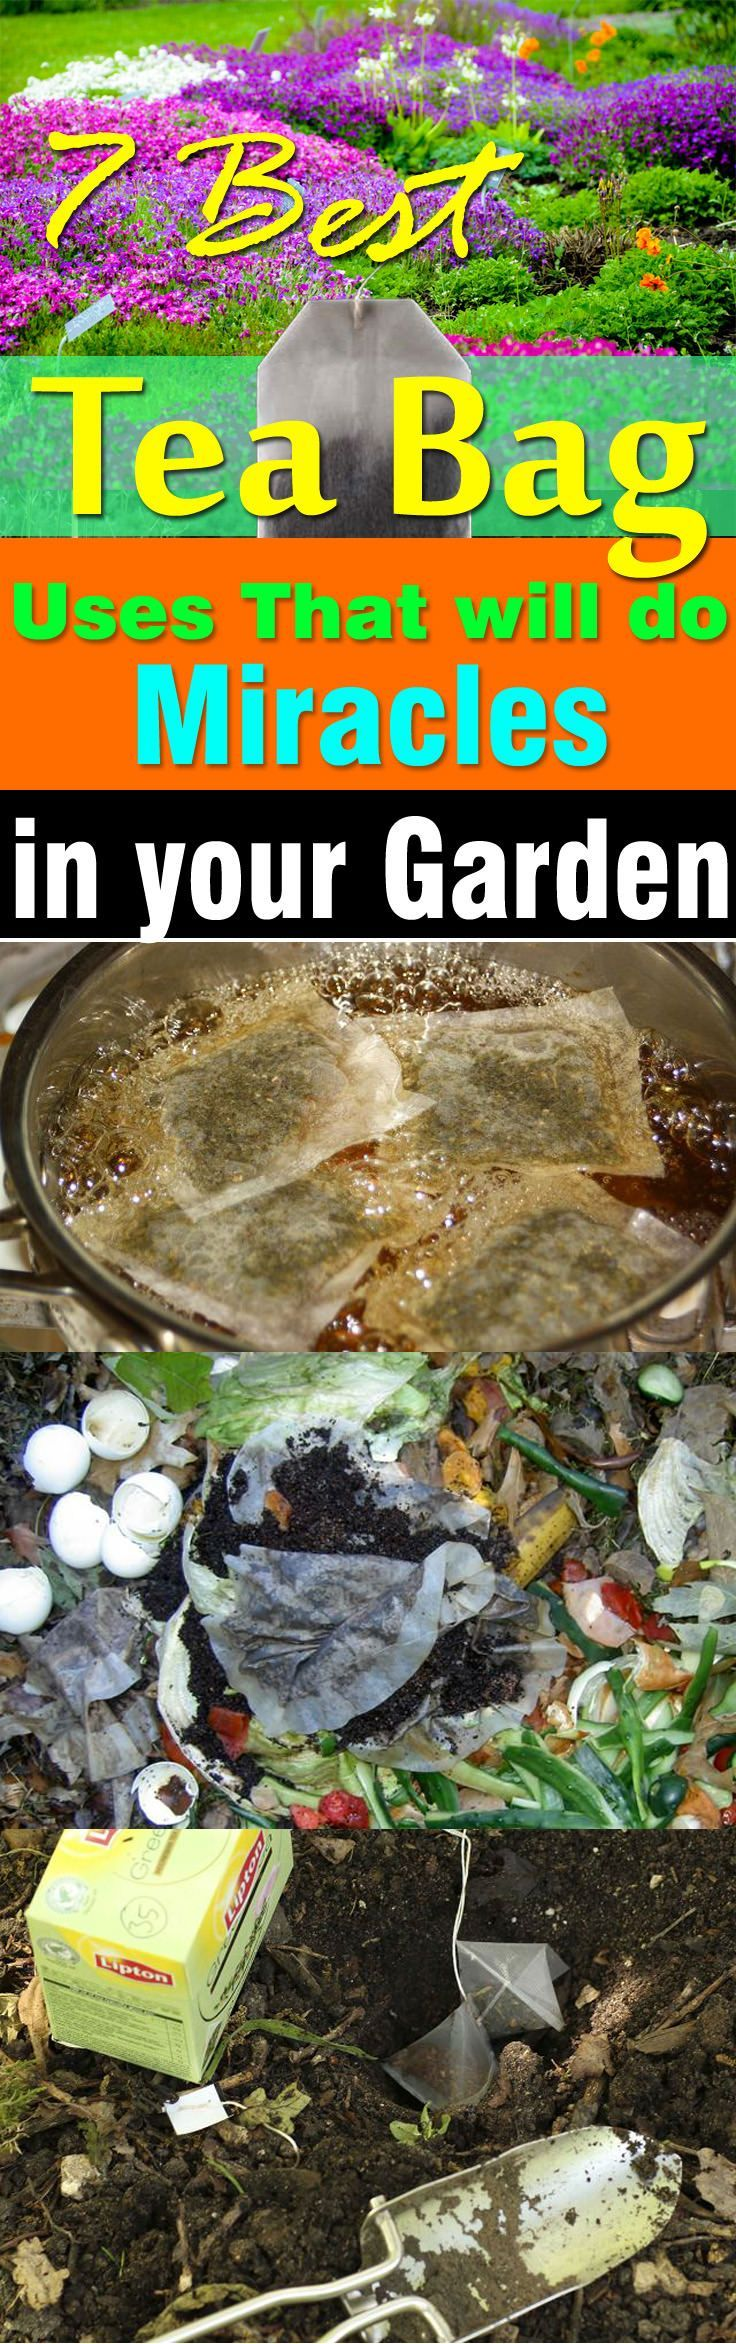 Before you toss another tea bag, must check out this post! Tea bags are not just for brewing tea, there are so many TEA BAG USES in the garden that can be useful.